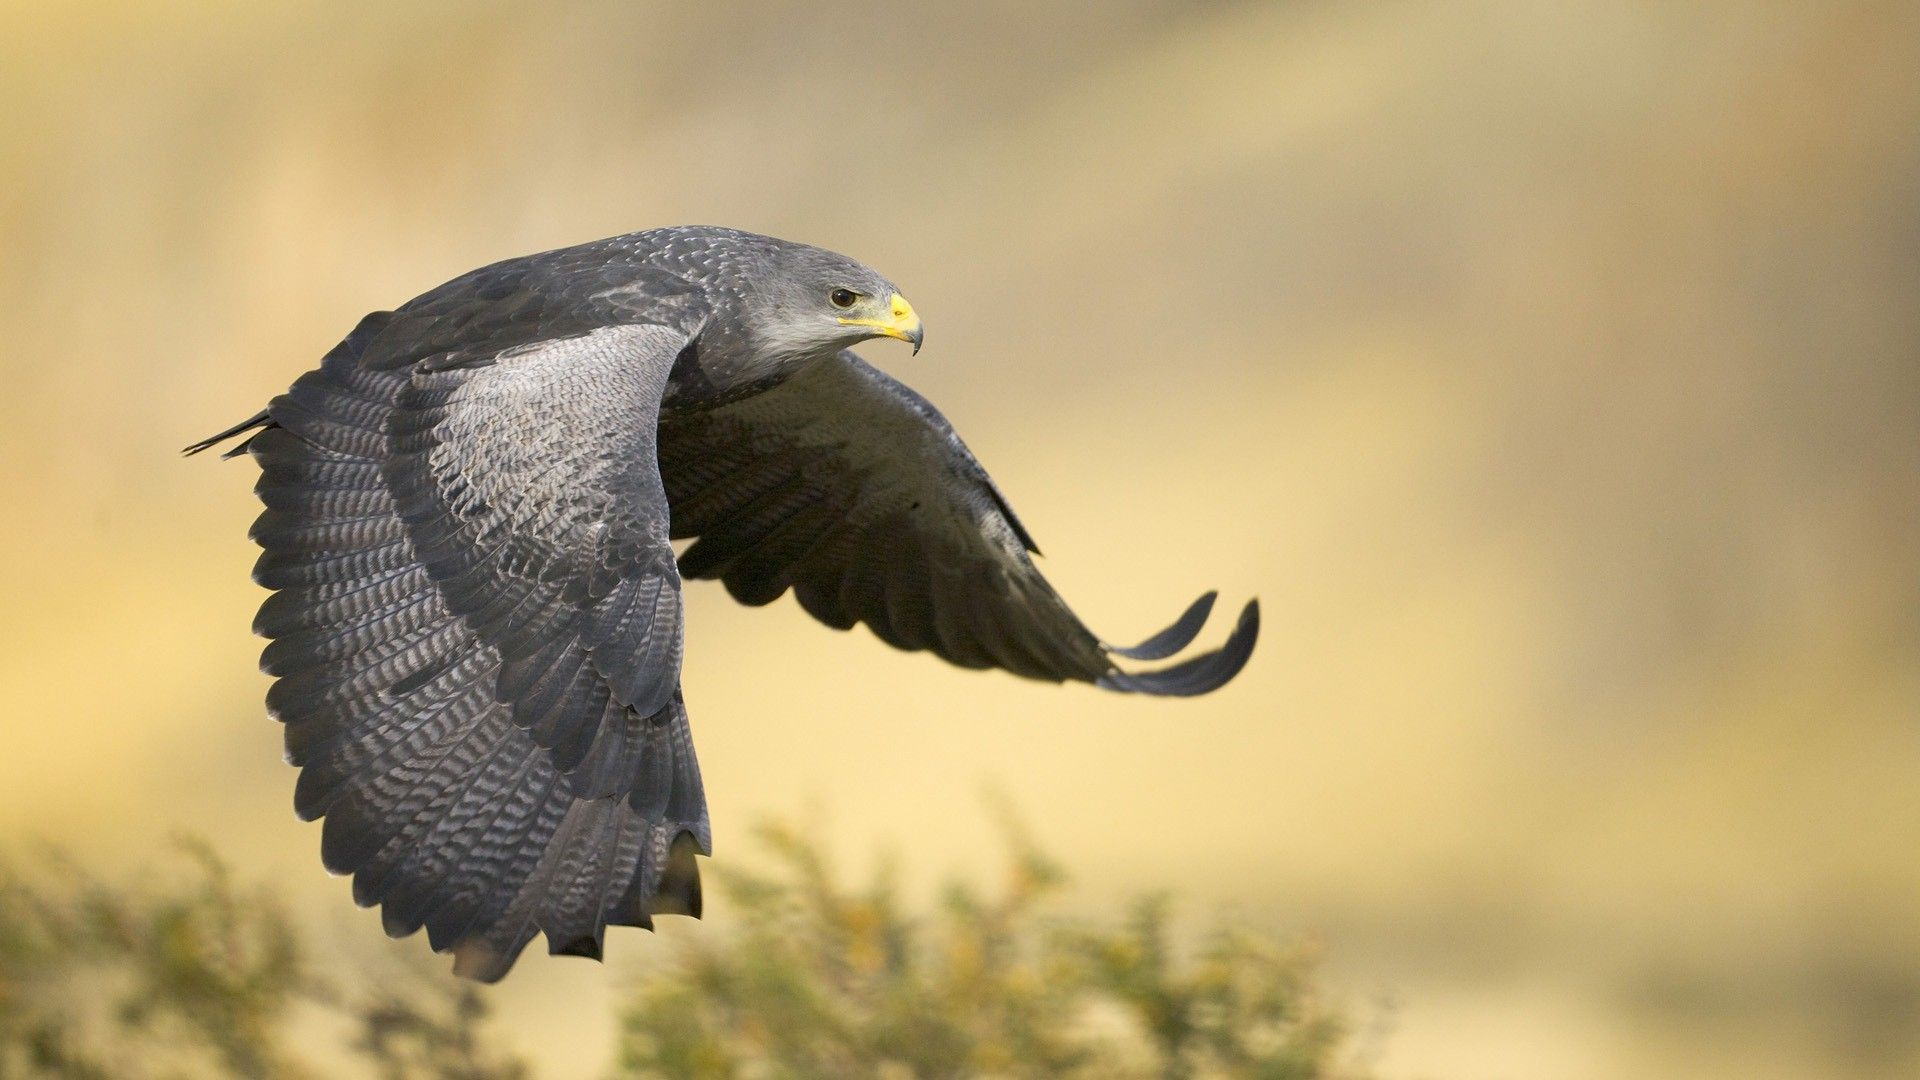 Falcon High Resolution Wallpapers: Peregrine Falcon Wallpaper High Quality Resolution